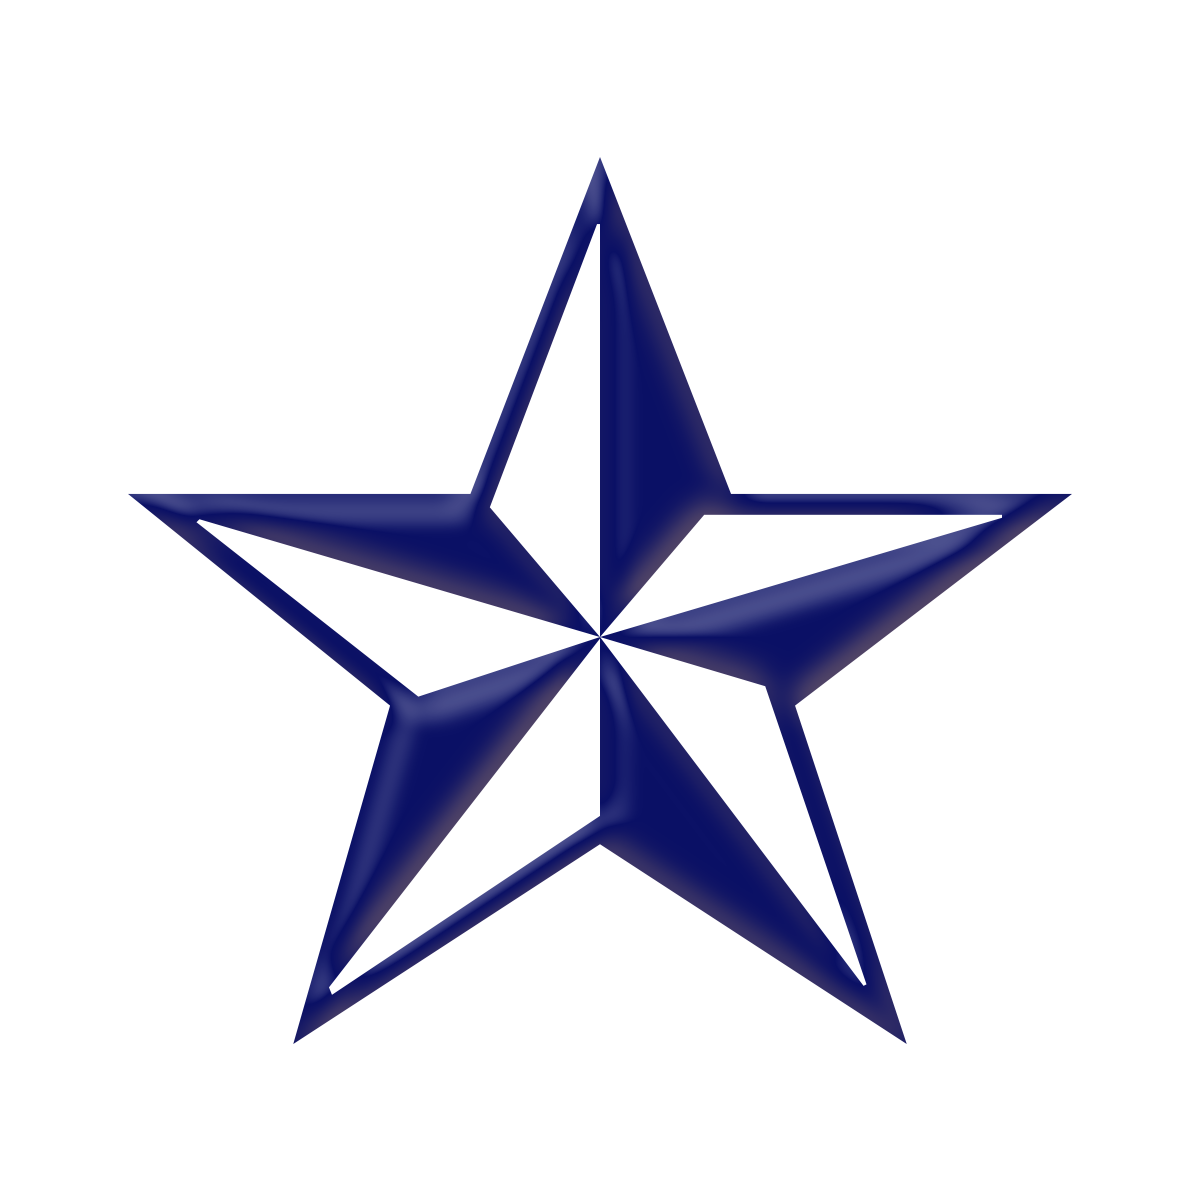 Free Download High Quality Blue 3d Star Icon Png Transparent Background This Is Vector Blue Star Png Icon Image It Ca Transparent Background 3d Star Star Logo